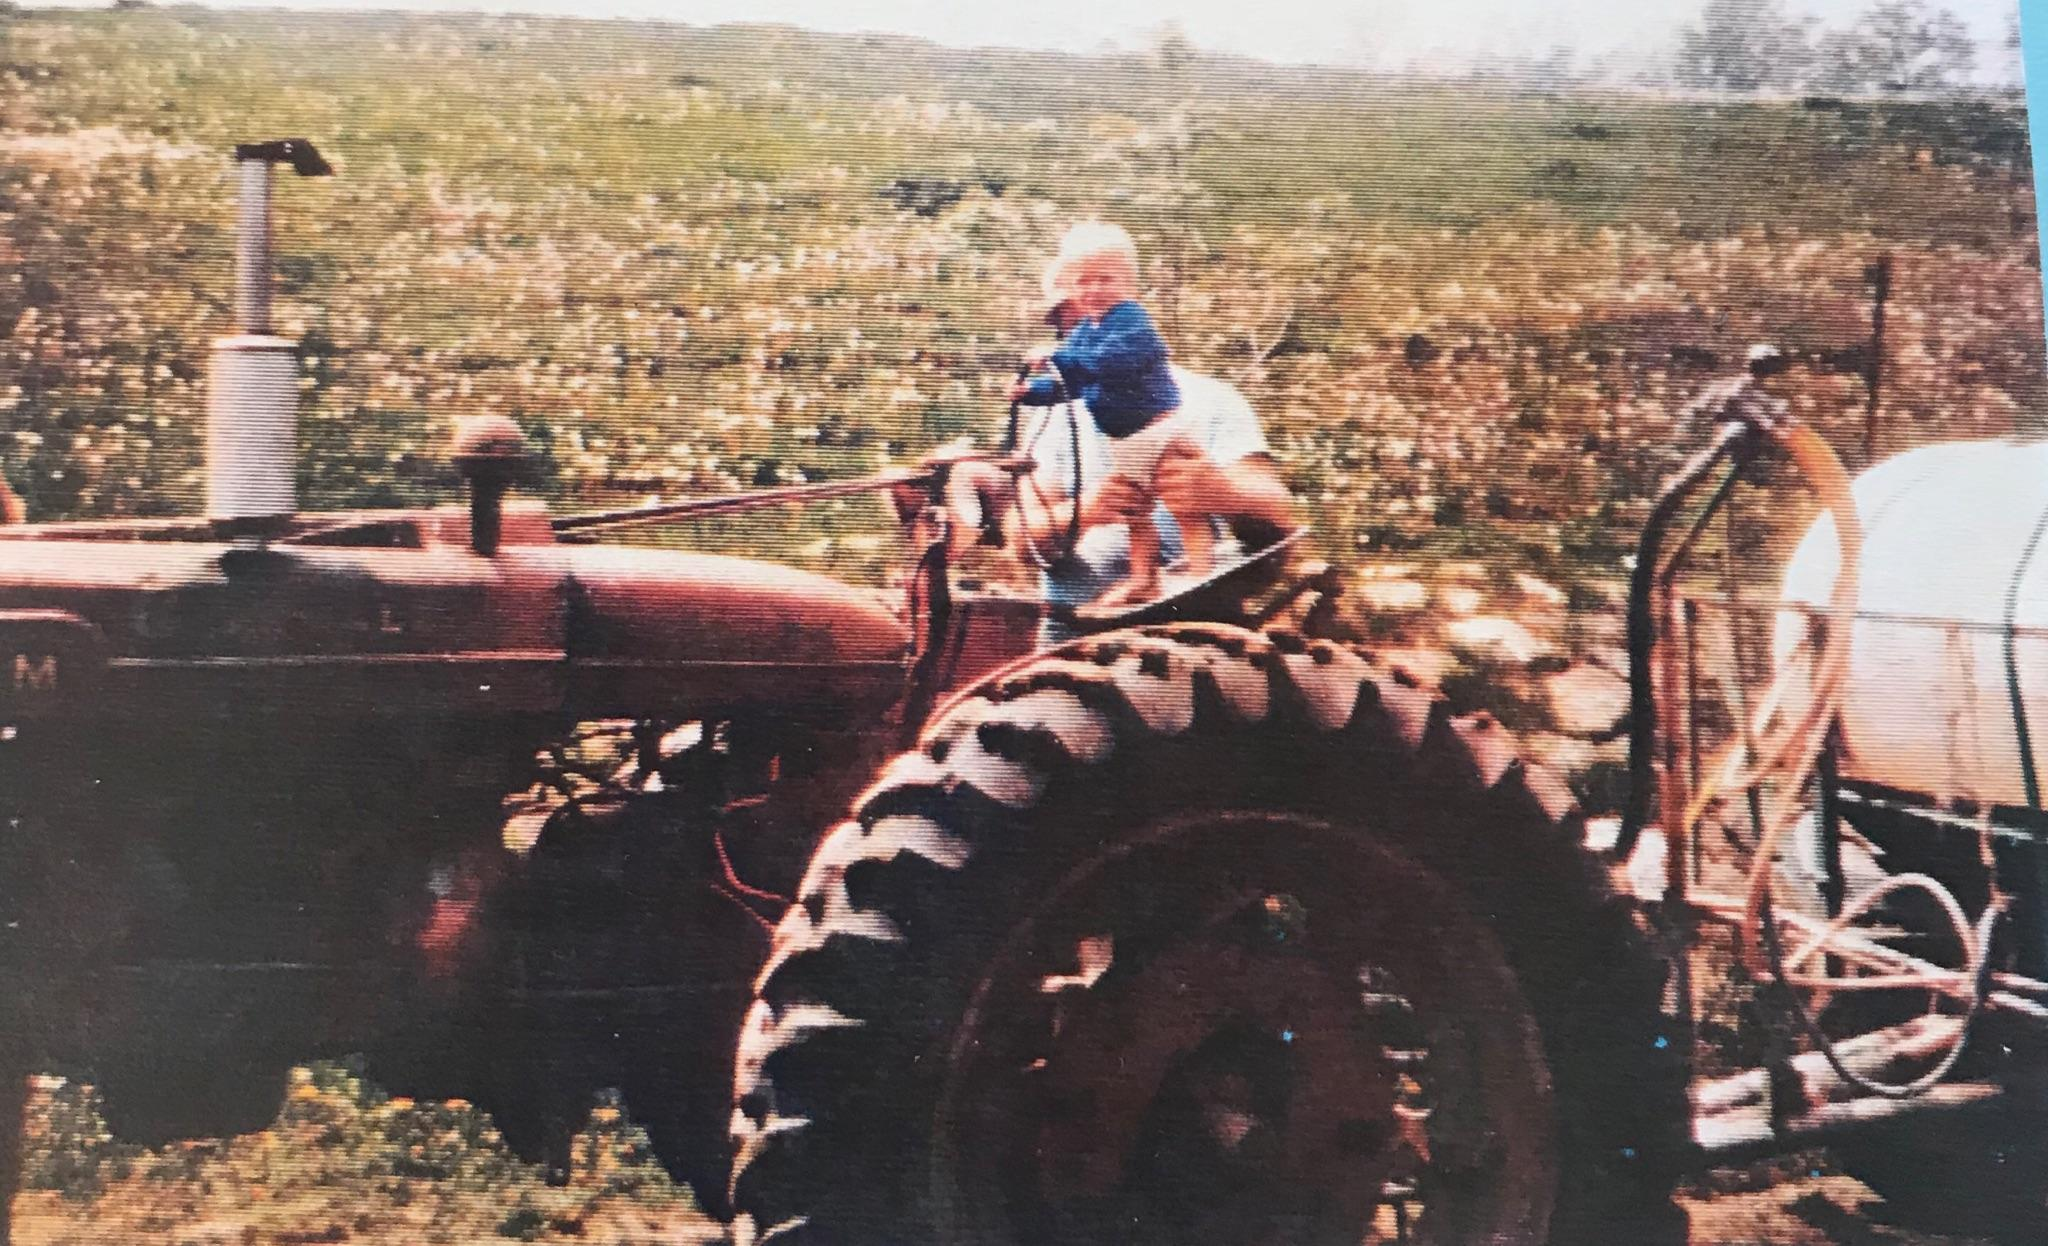 Nick on the tractor